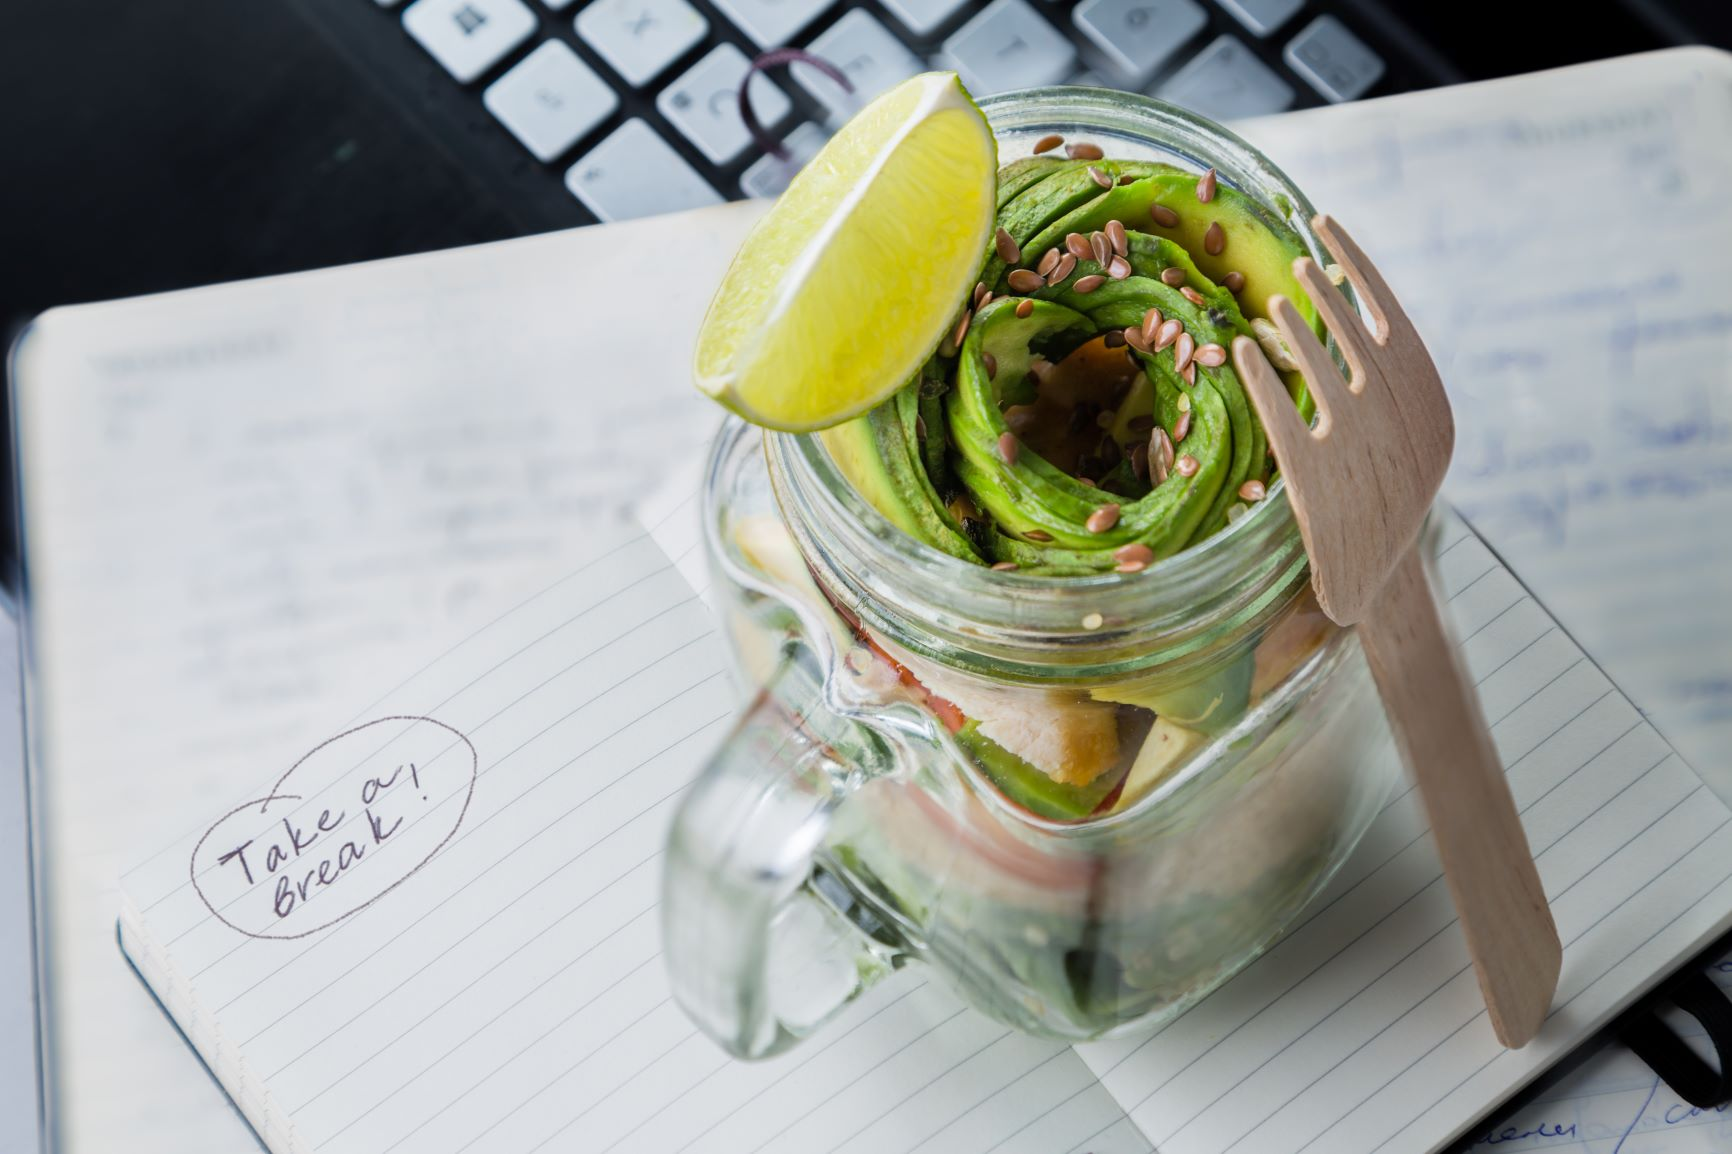 3. Canva - Healthy Lunch in Glass Jar